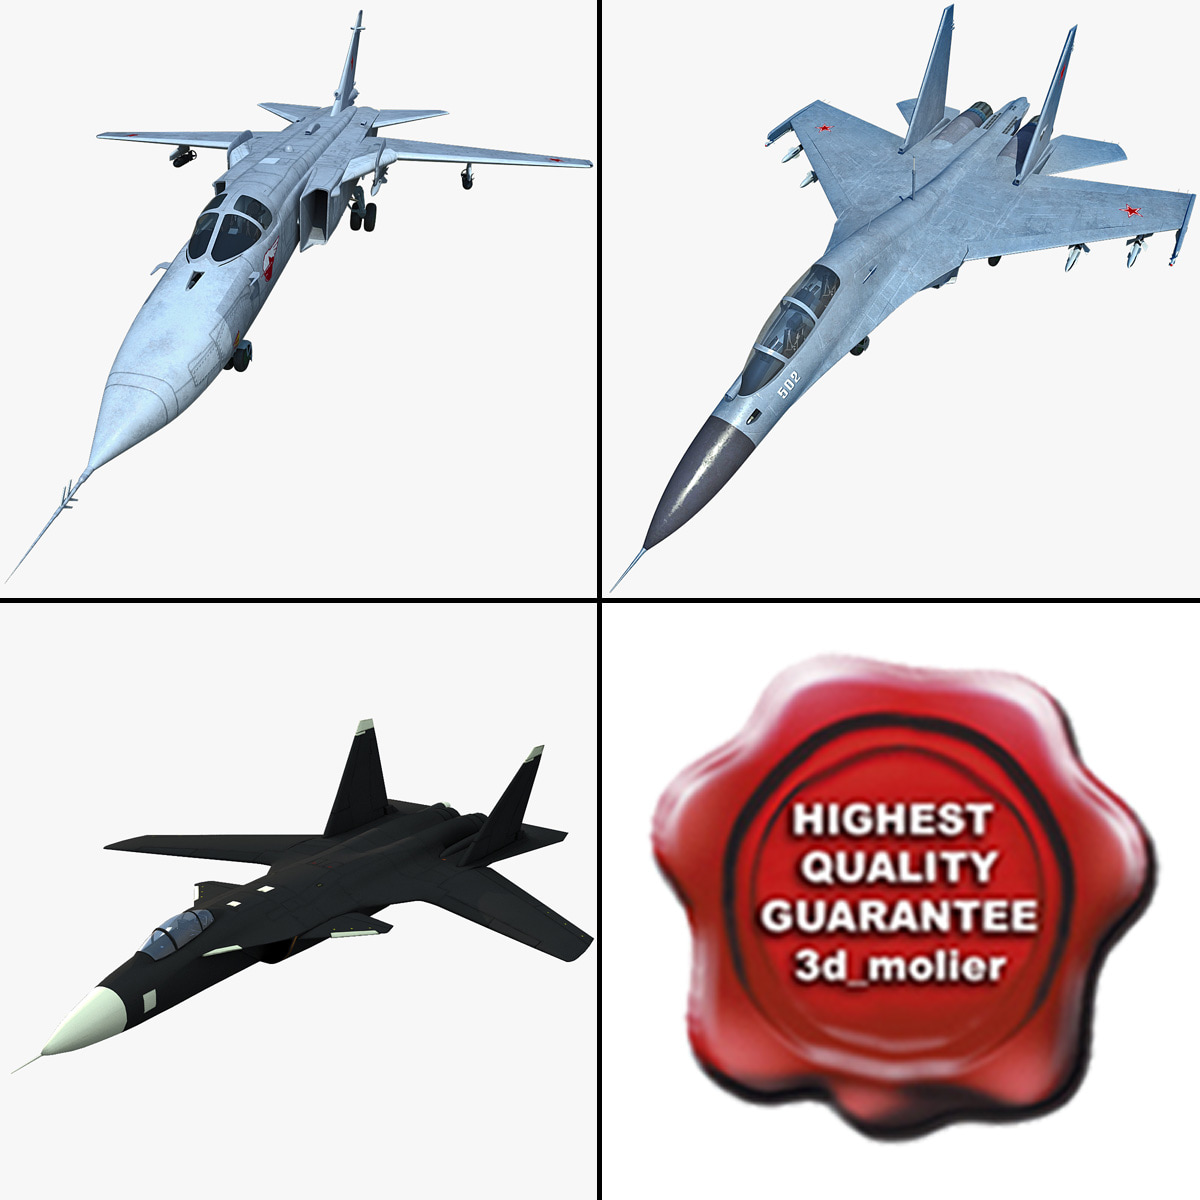 max jet fighters 6